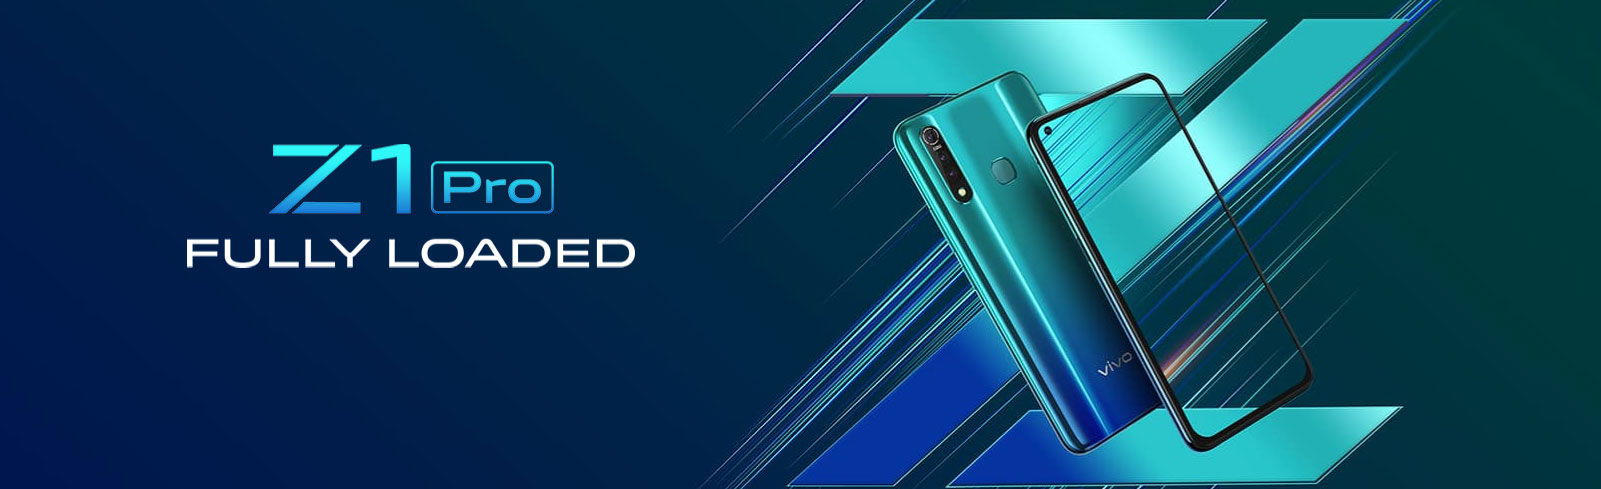 vivo Z1 Pro with Snapdragon 712 is available in India